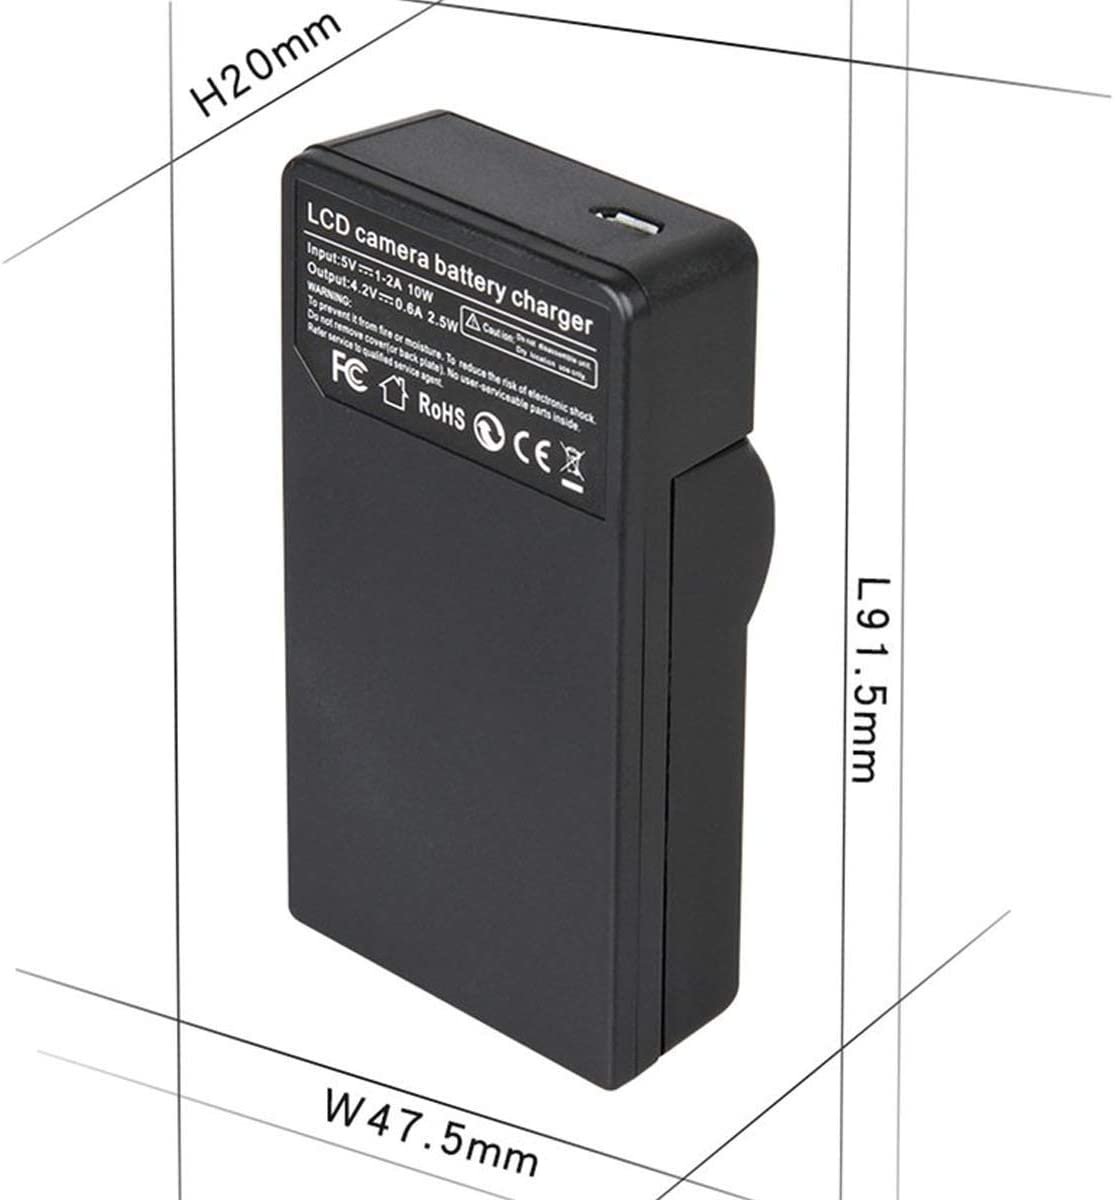 VP-D964Wi VP-D965Wi Battery Charger for Samsung VP-D963i VP-D975Wi Digital Camcorder